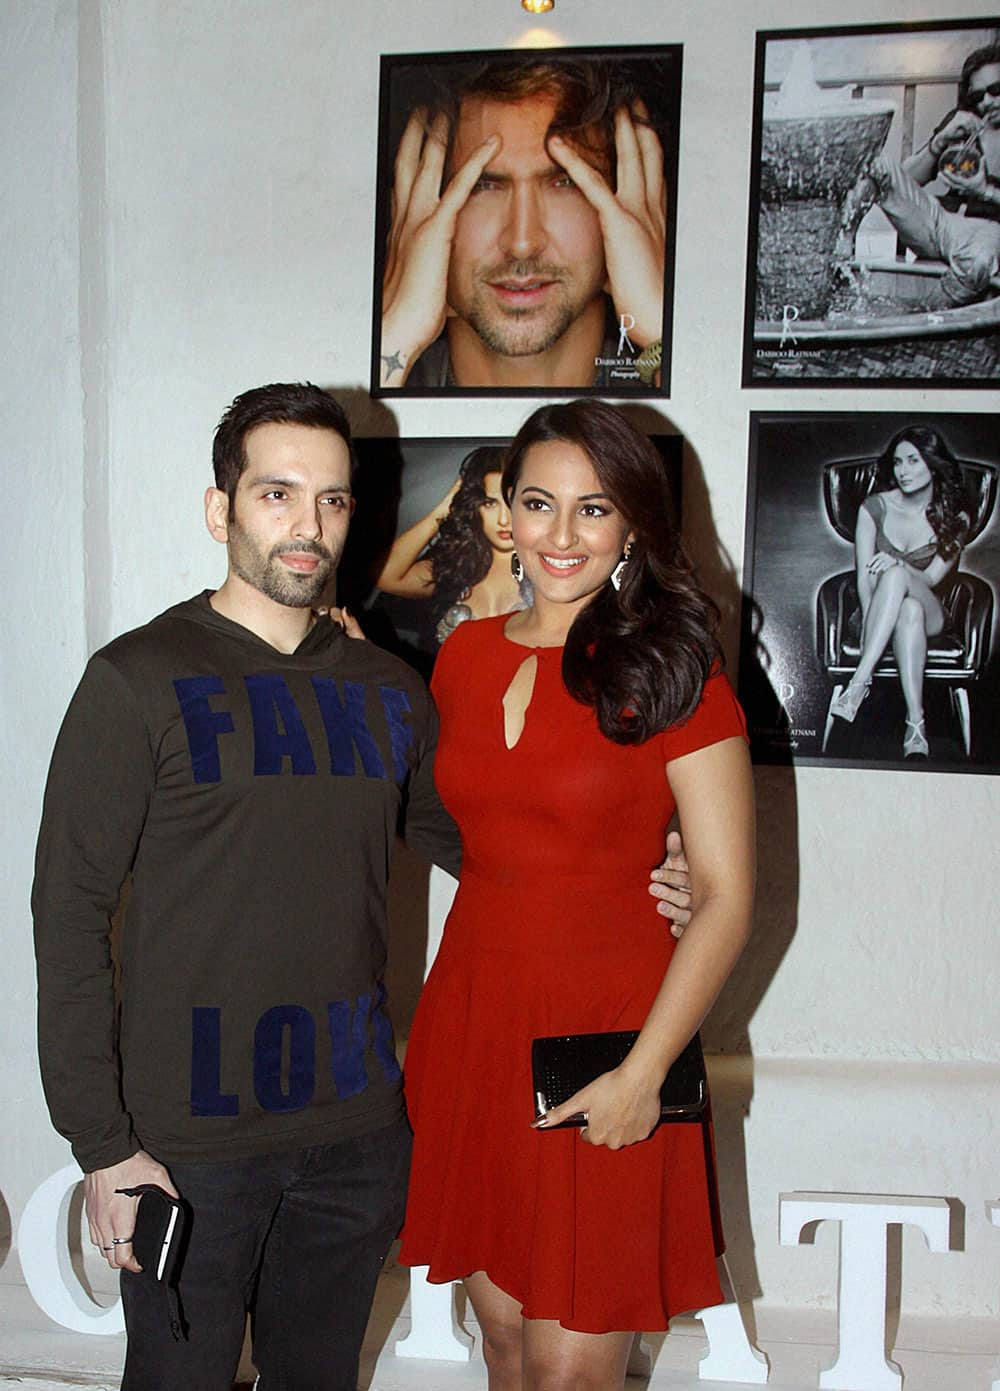 Bollywood actress Sonakshi Sinha with her brother Luv at the launch of photographer Dabboo Ratnani's annual Bollywood calendar in Mumbai.